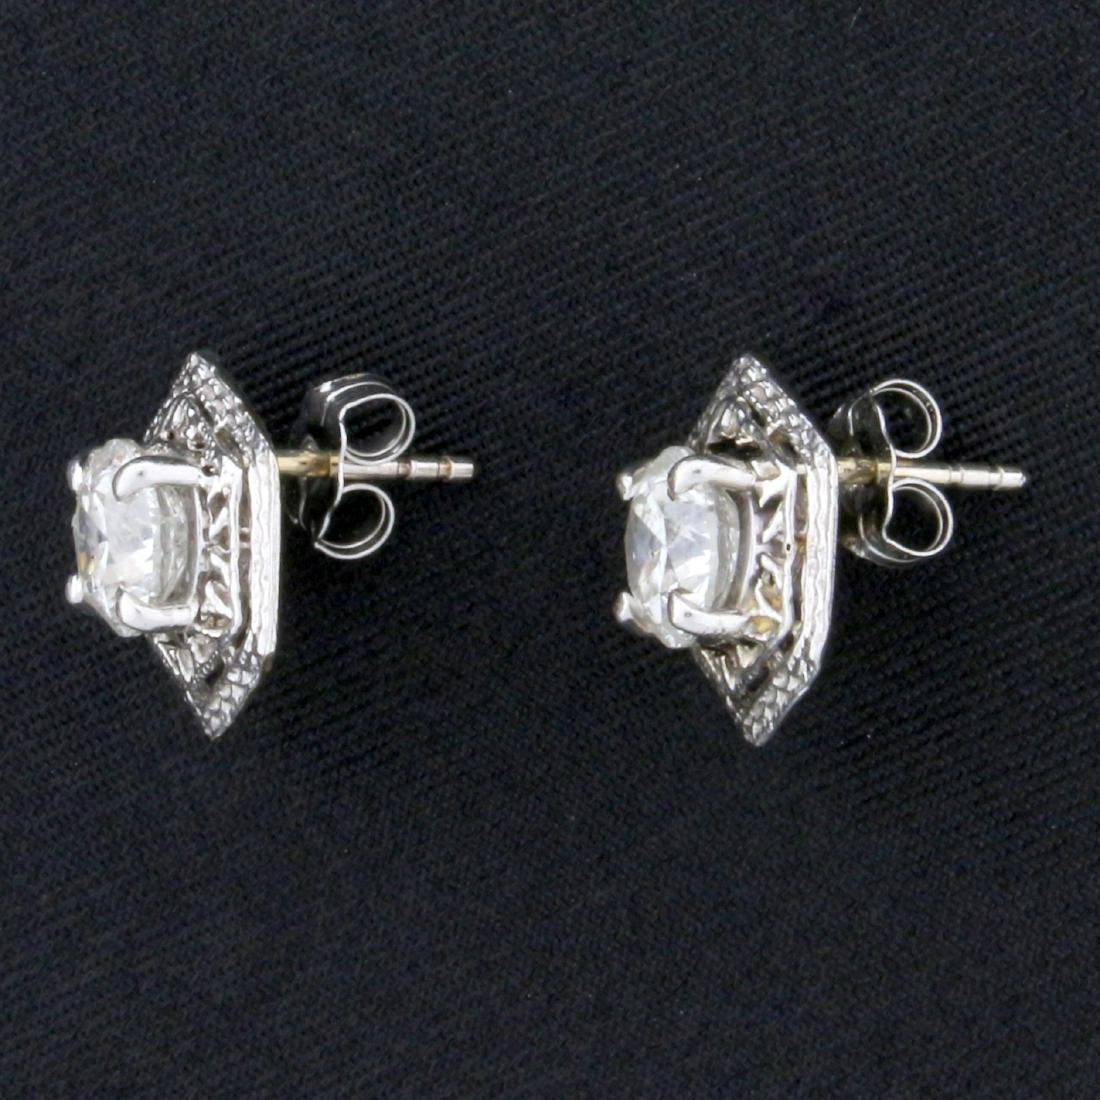 Unique 1.6ct TW Diamond Earrings in 14k White Gold - 2